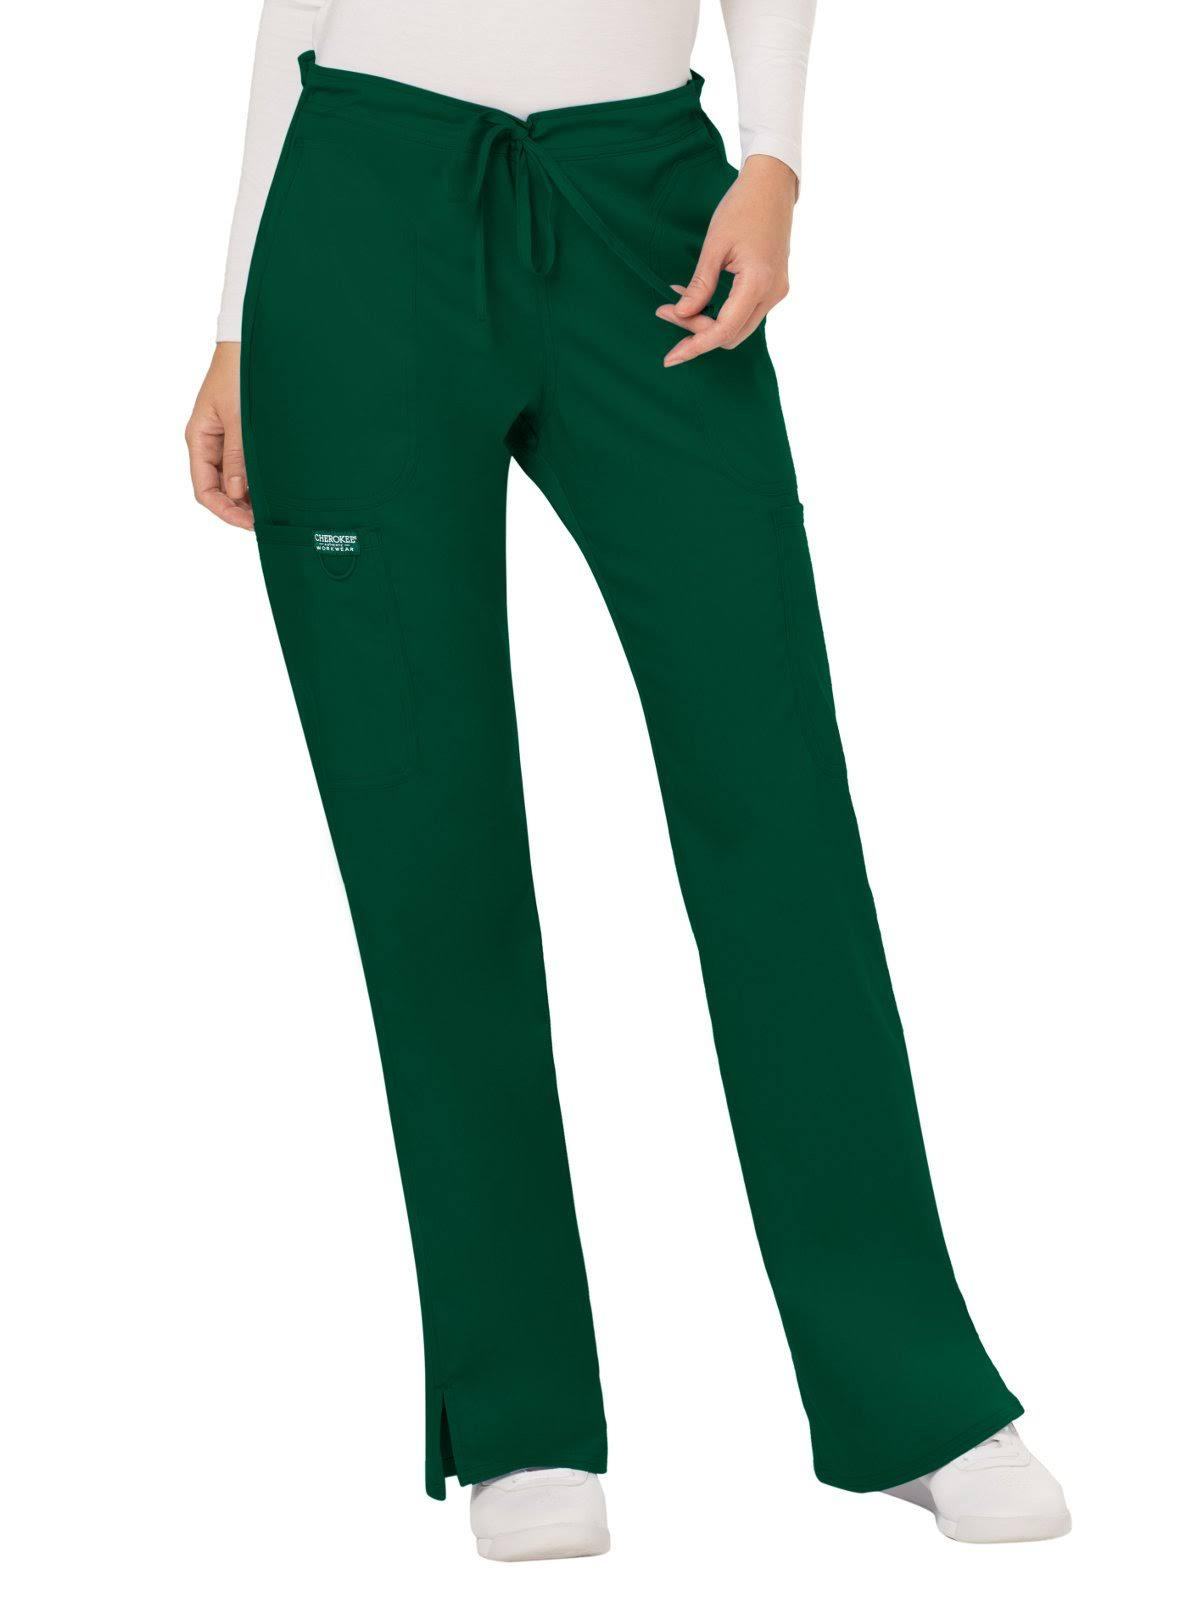 Cherokee Workwear WW120 Mid Rise Moderate Flare Drawstring Pant - Hunter Green - M